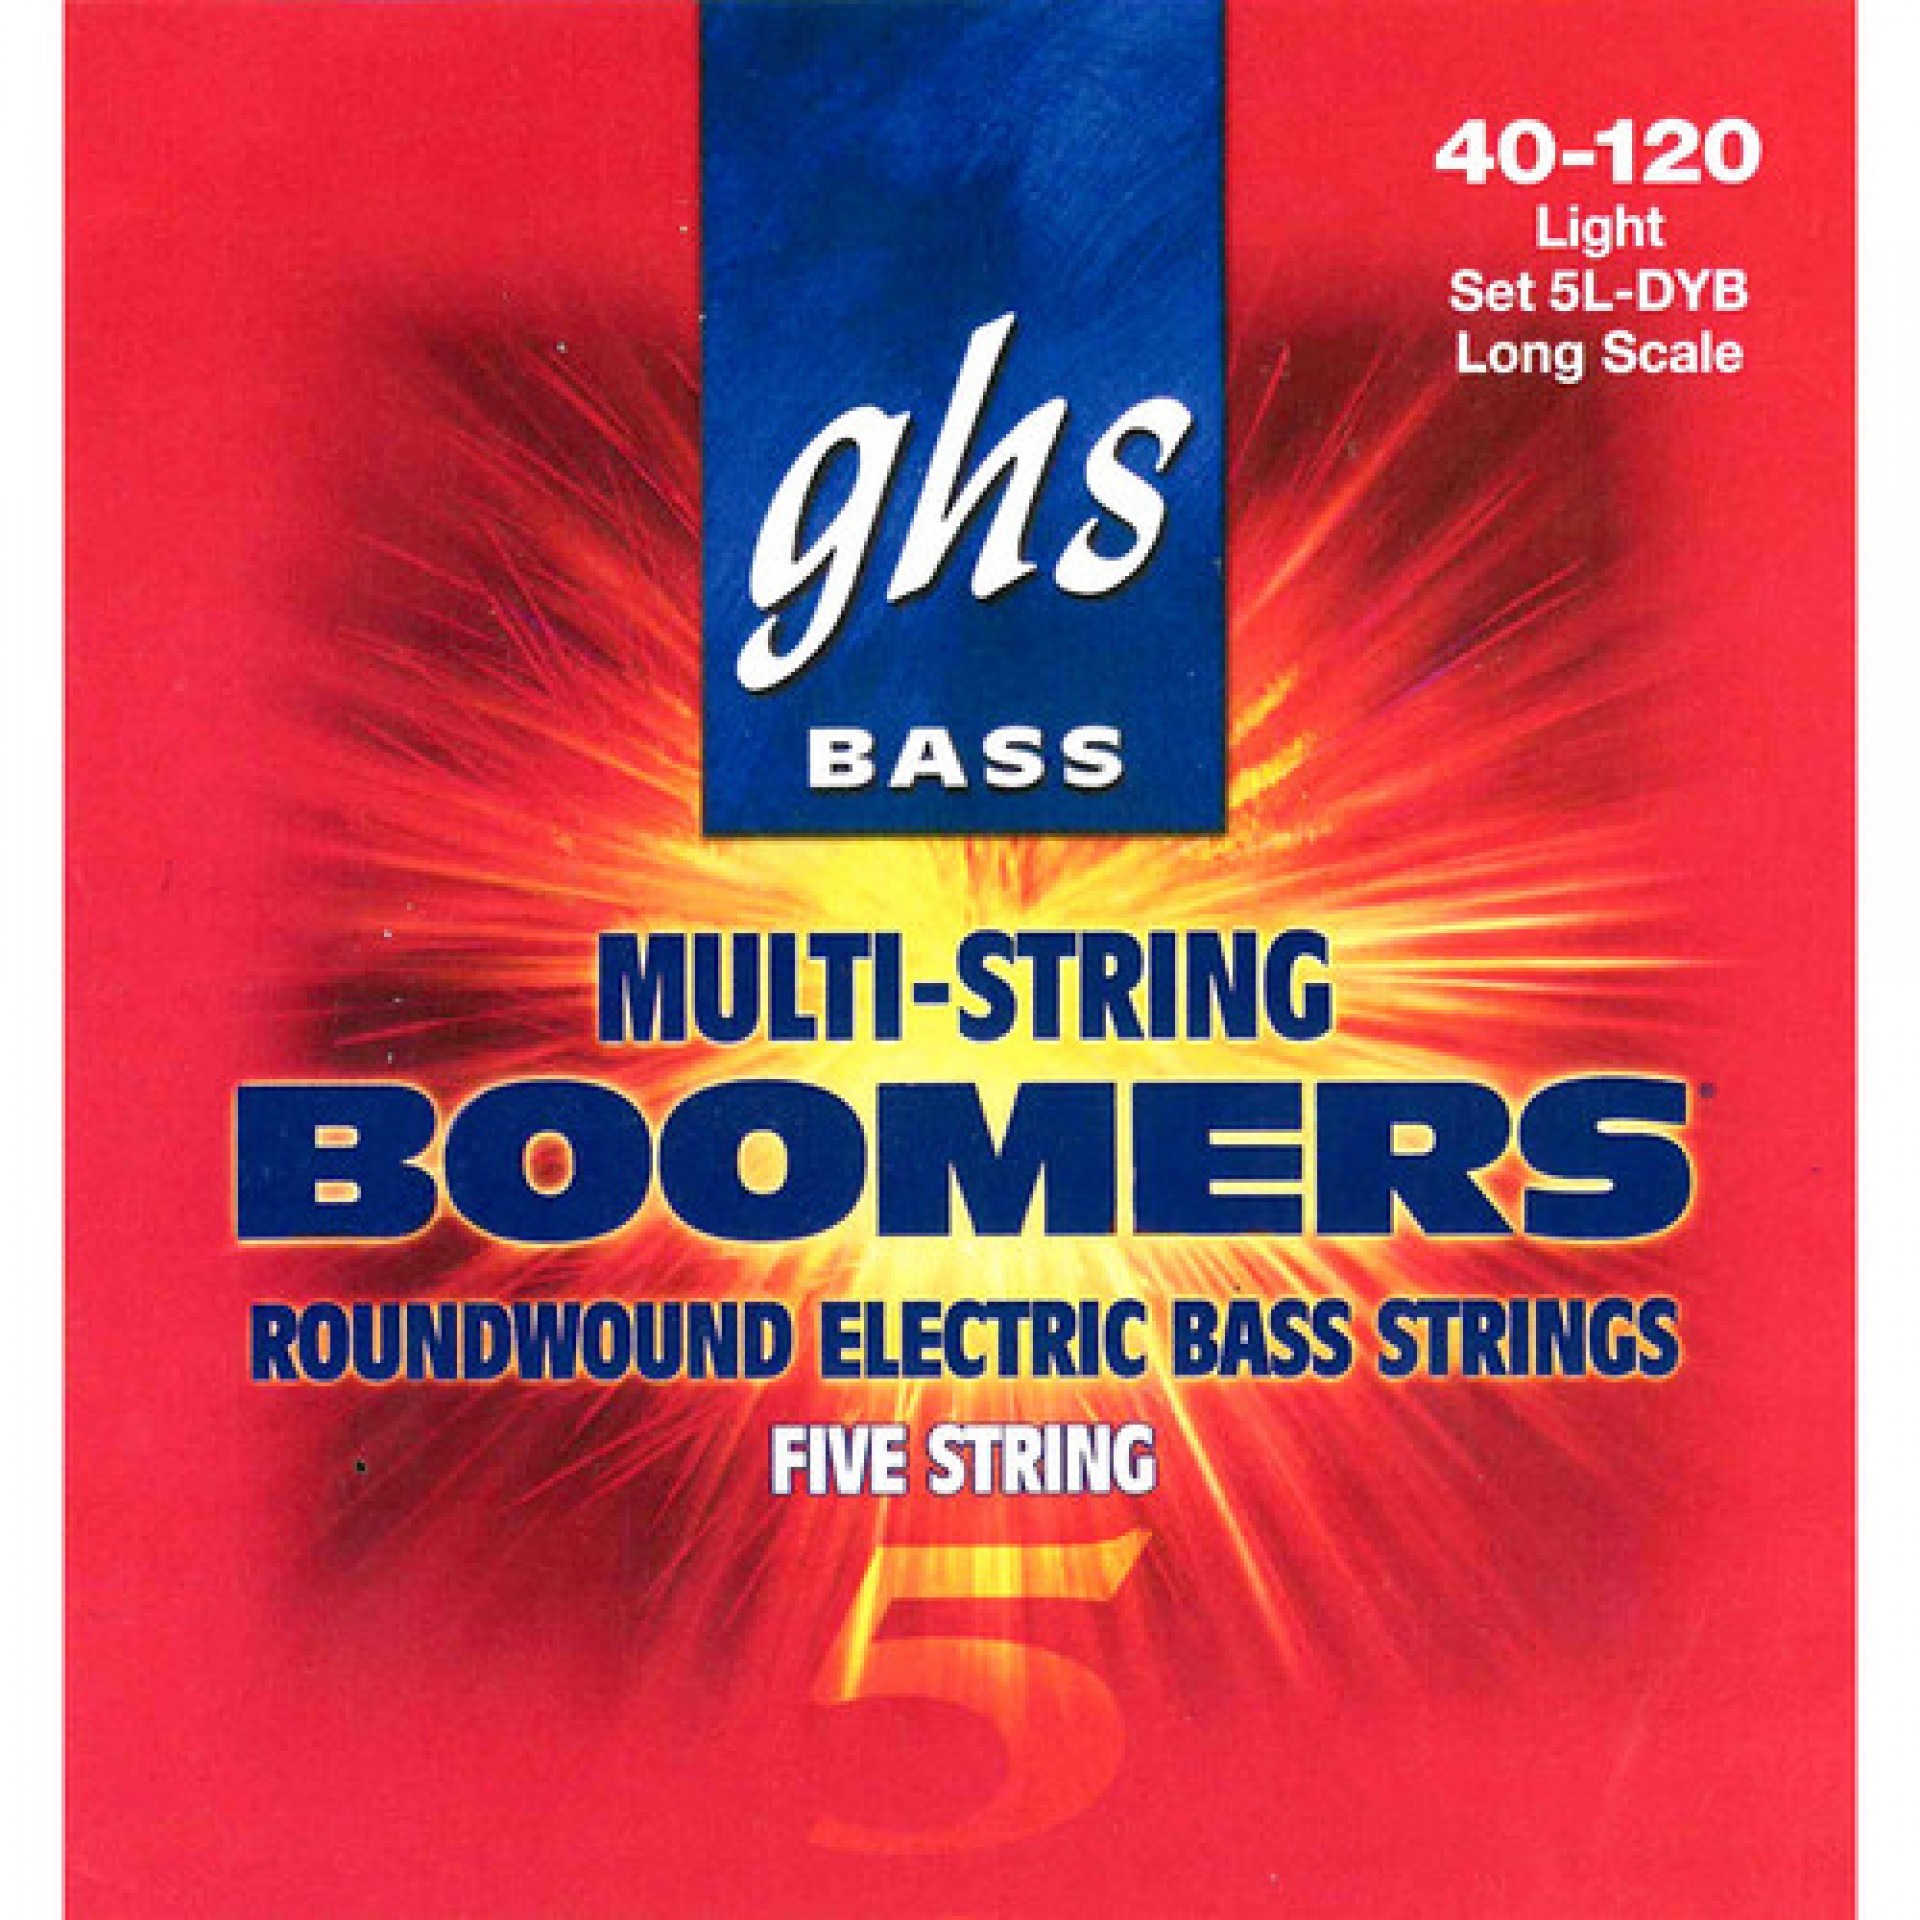 GHS 5L-DYB Light Bass Boomers Roundwound Electric Bass Strings (5-String Set, Long Scale, 40 - 120)